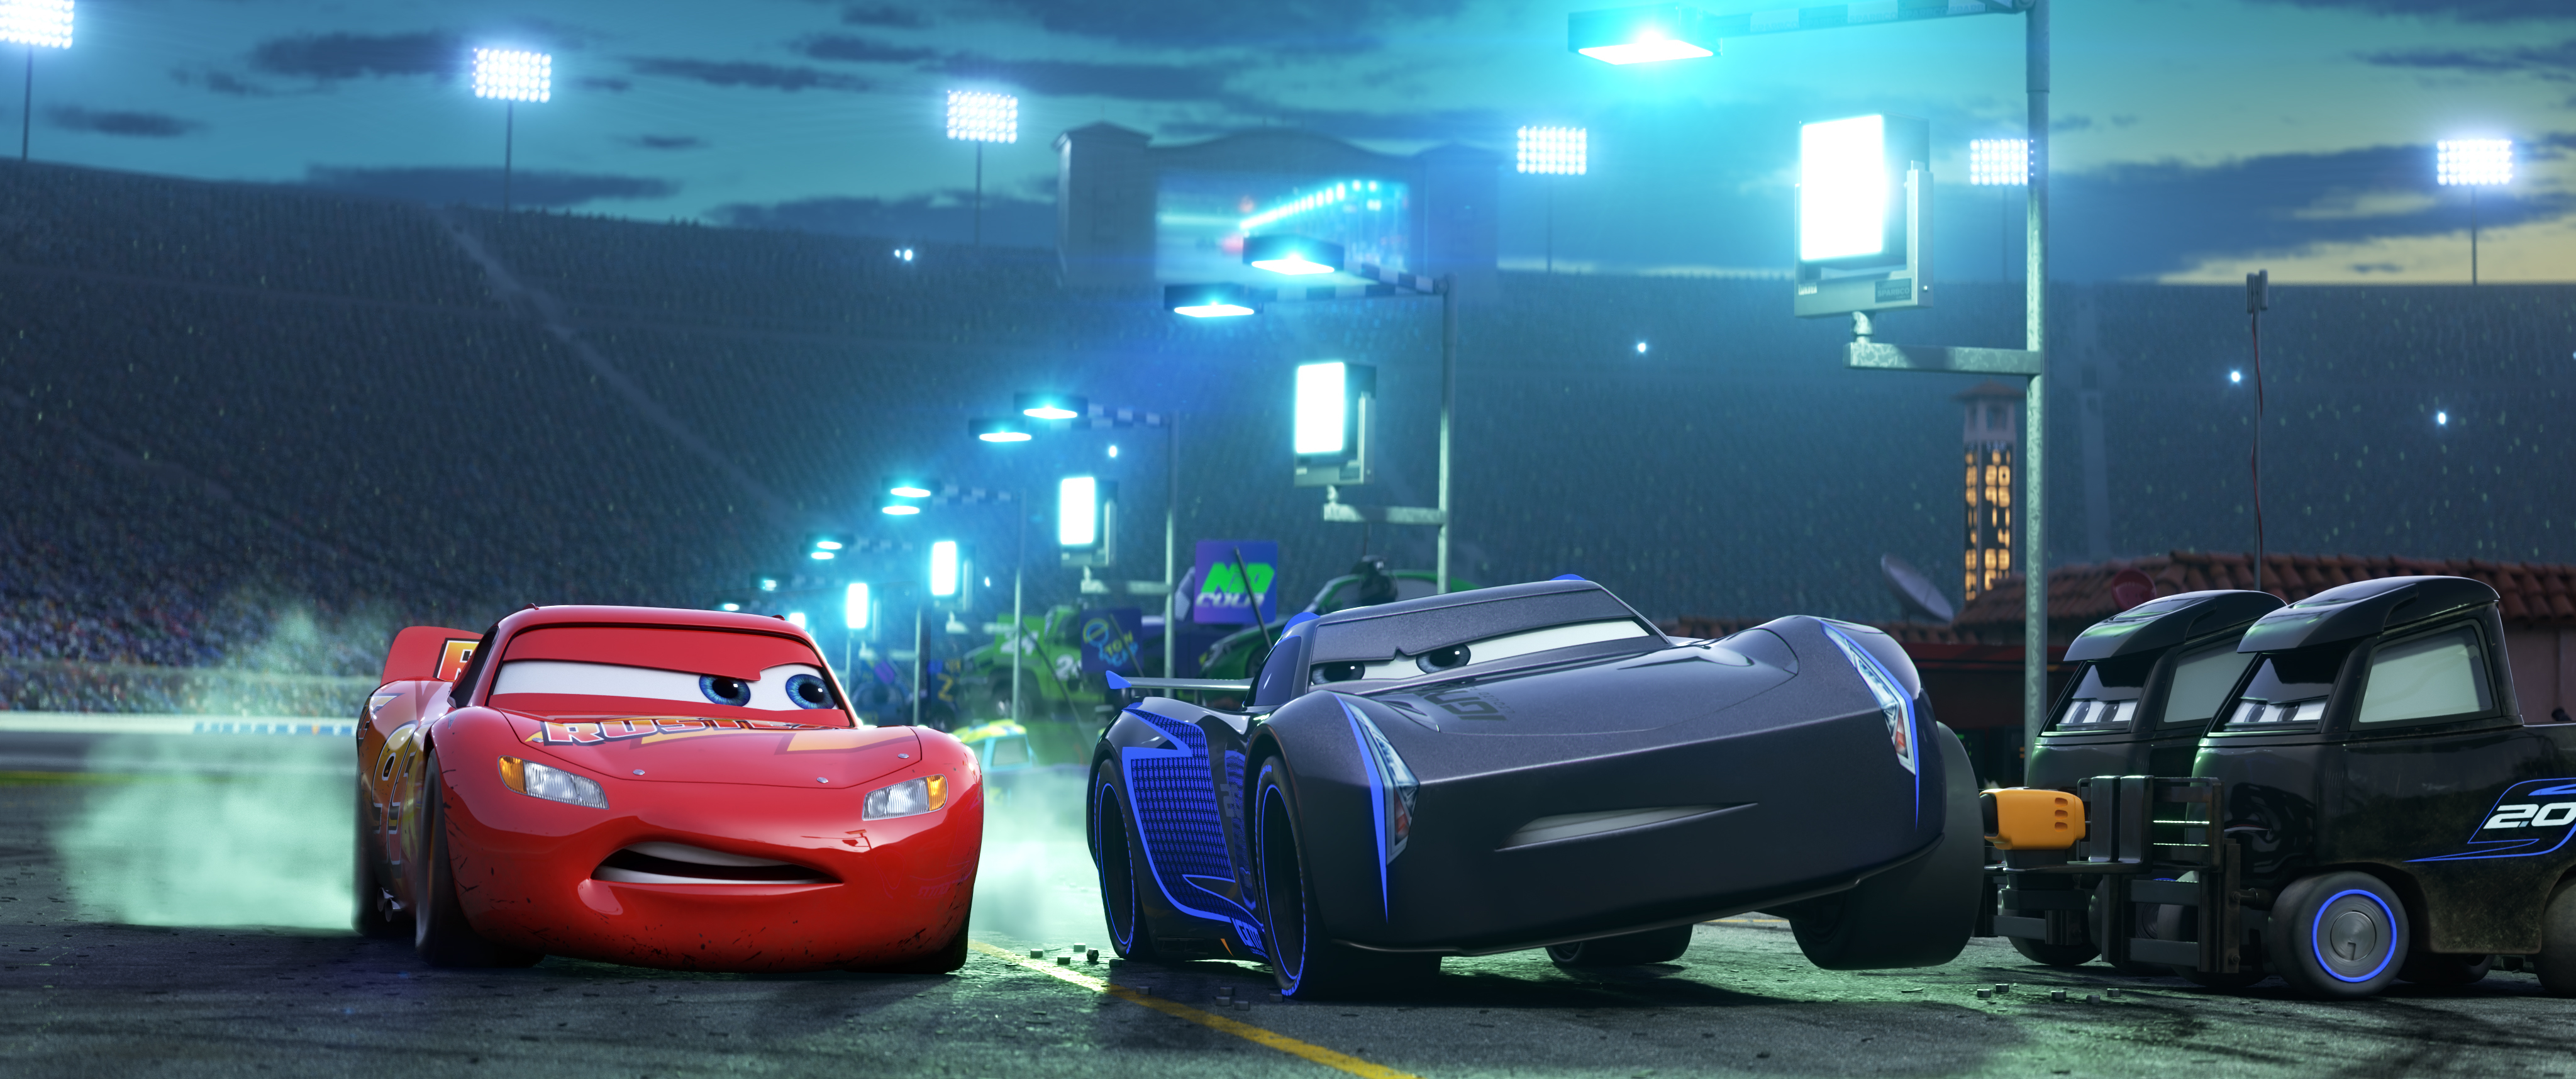 Cars Finally A Cars Movie Worthy Of The Pixar Name Rolling - Car pro show reviews